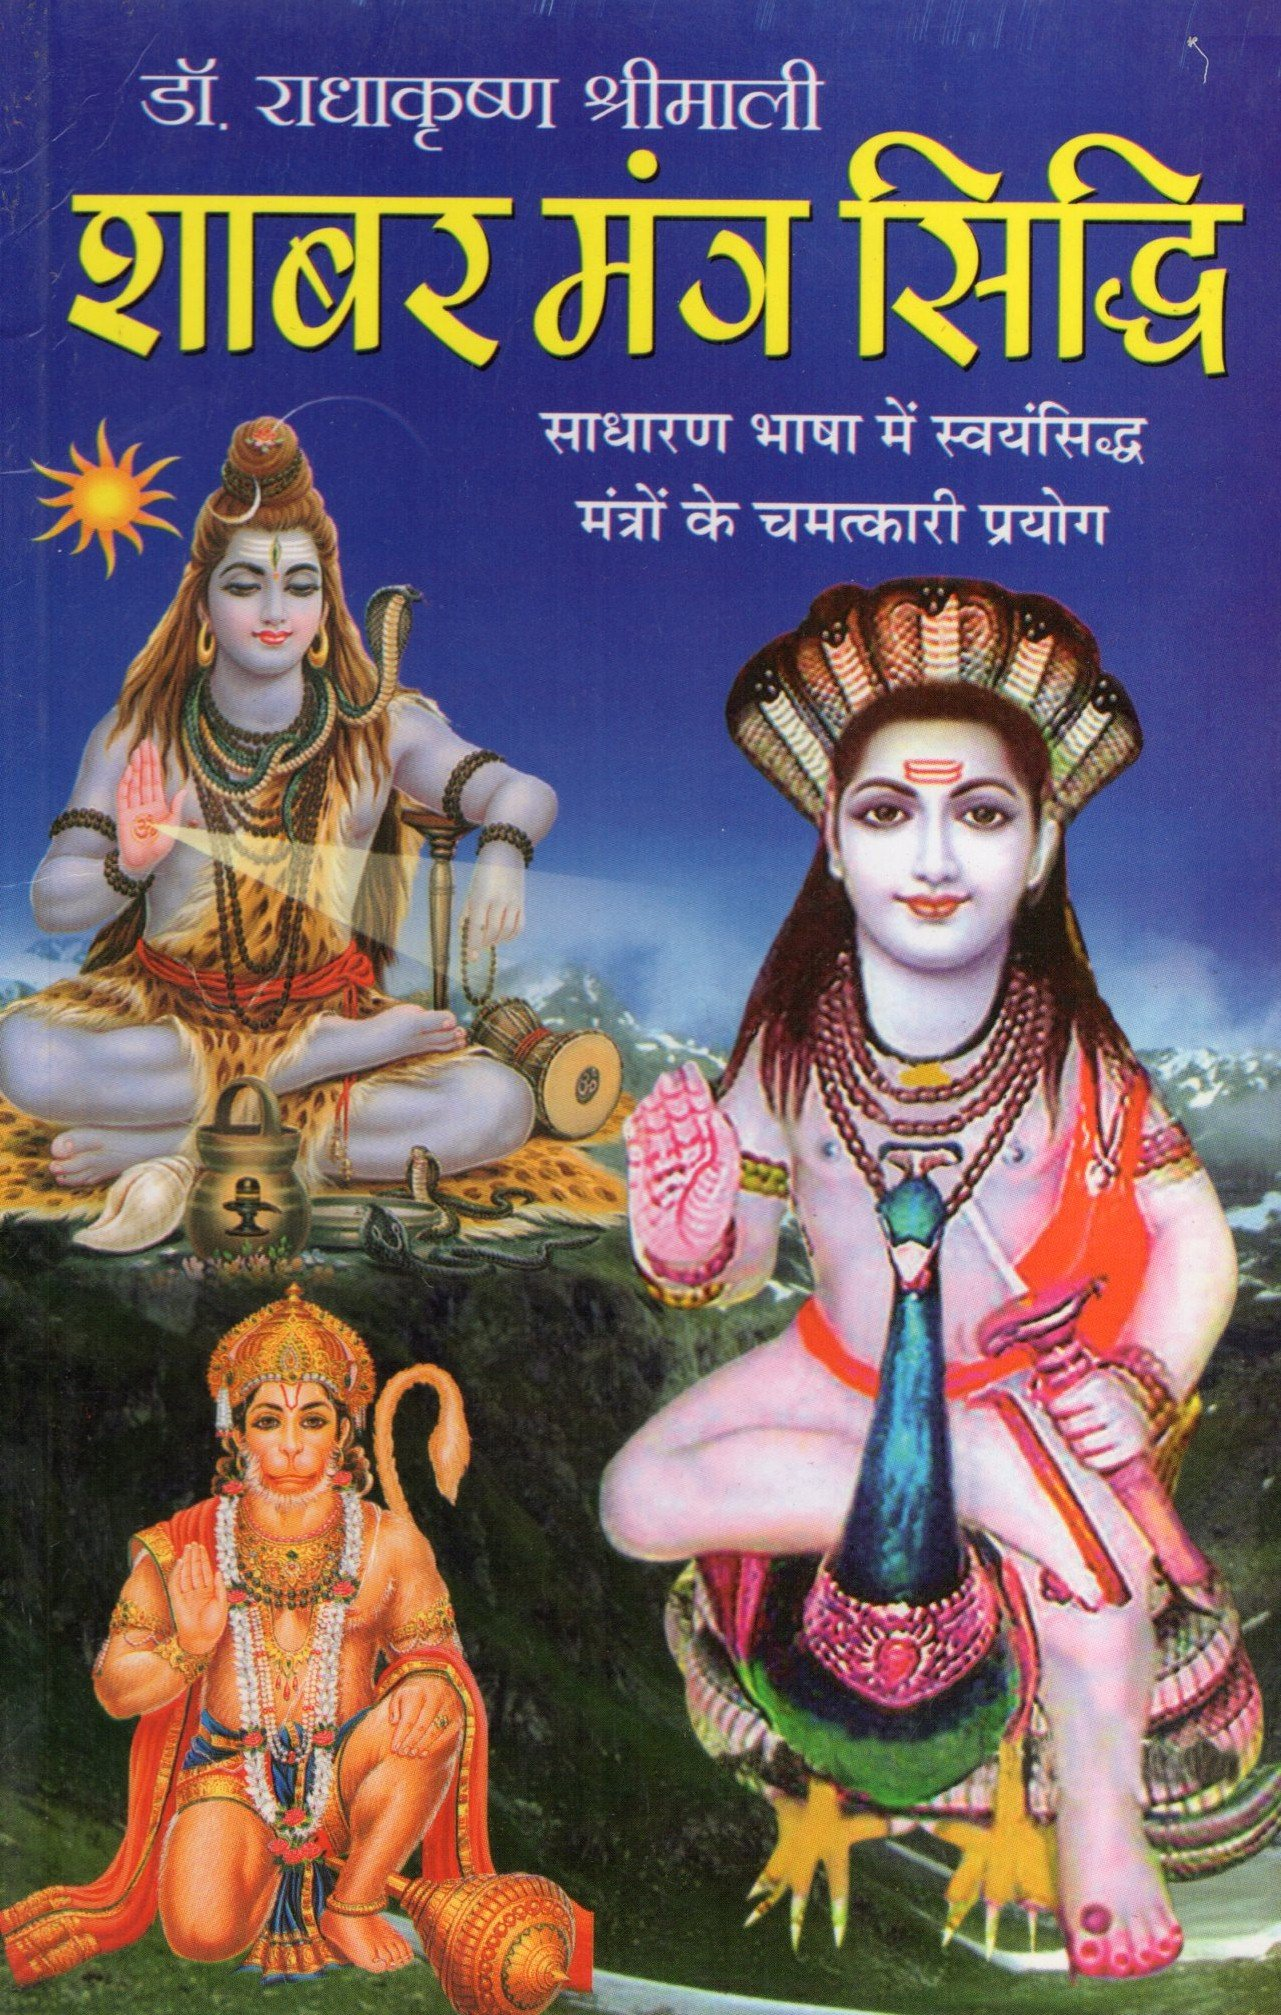 Amazon in: Buy Shabar Mantra Siddhi Book Online at Low Prices in